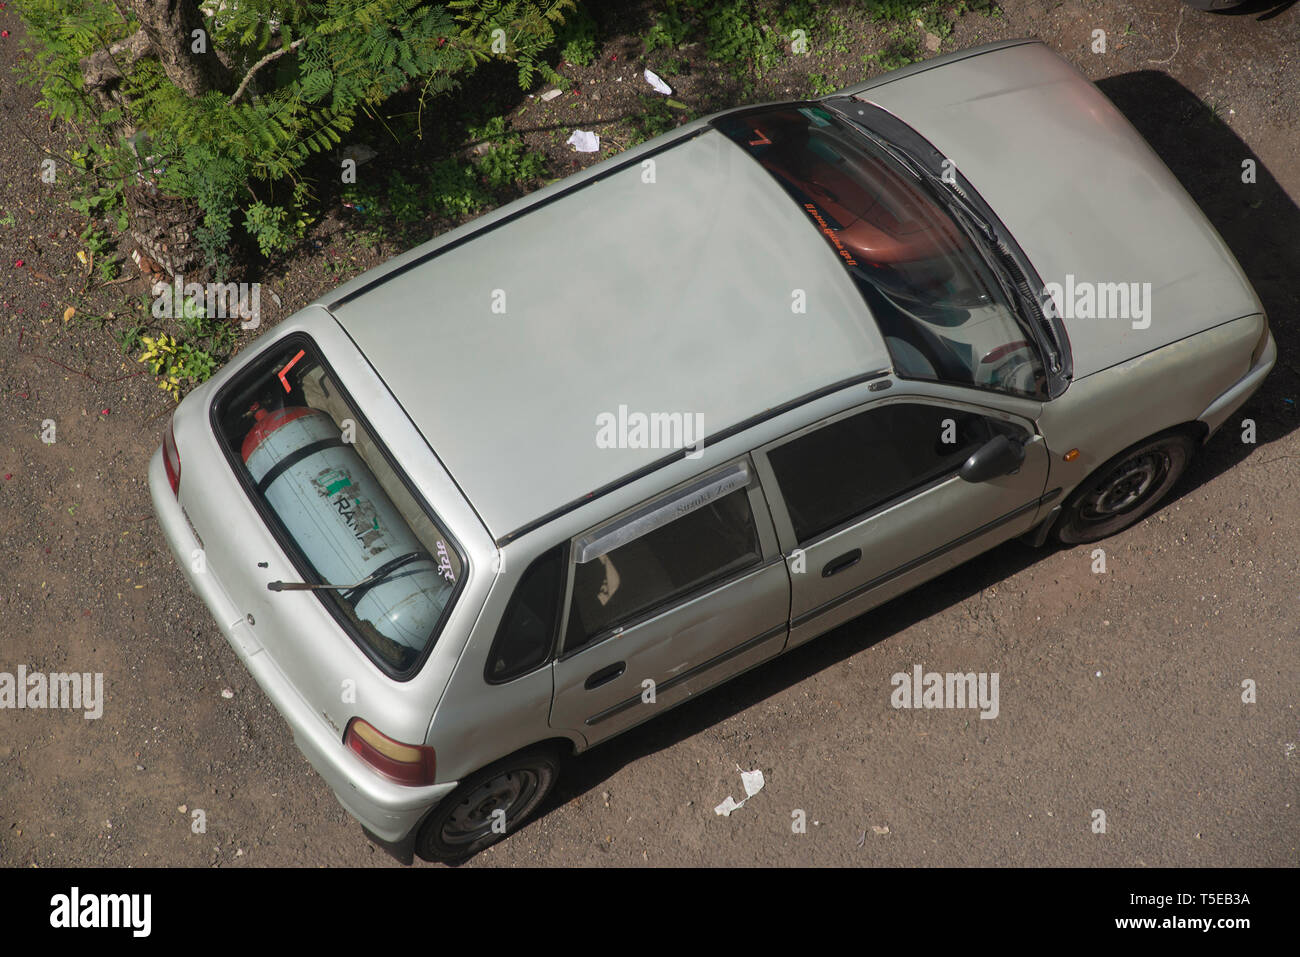 car with Tank of Gas fixed in backside, Pune, Maharashtra, India, Asia - Stock Image